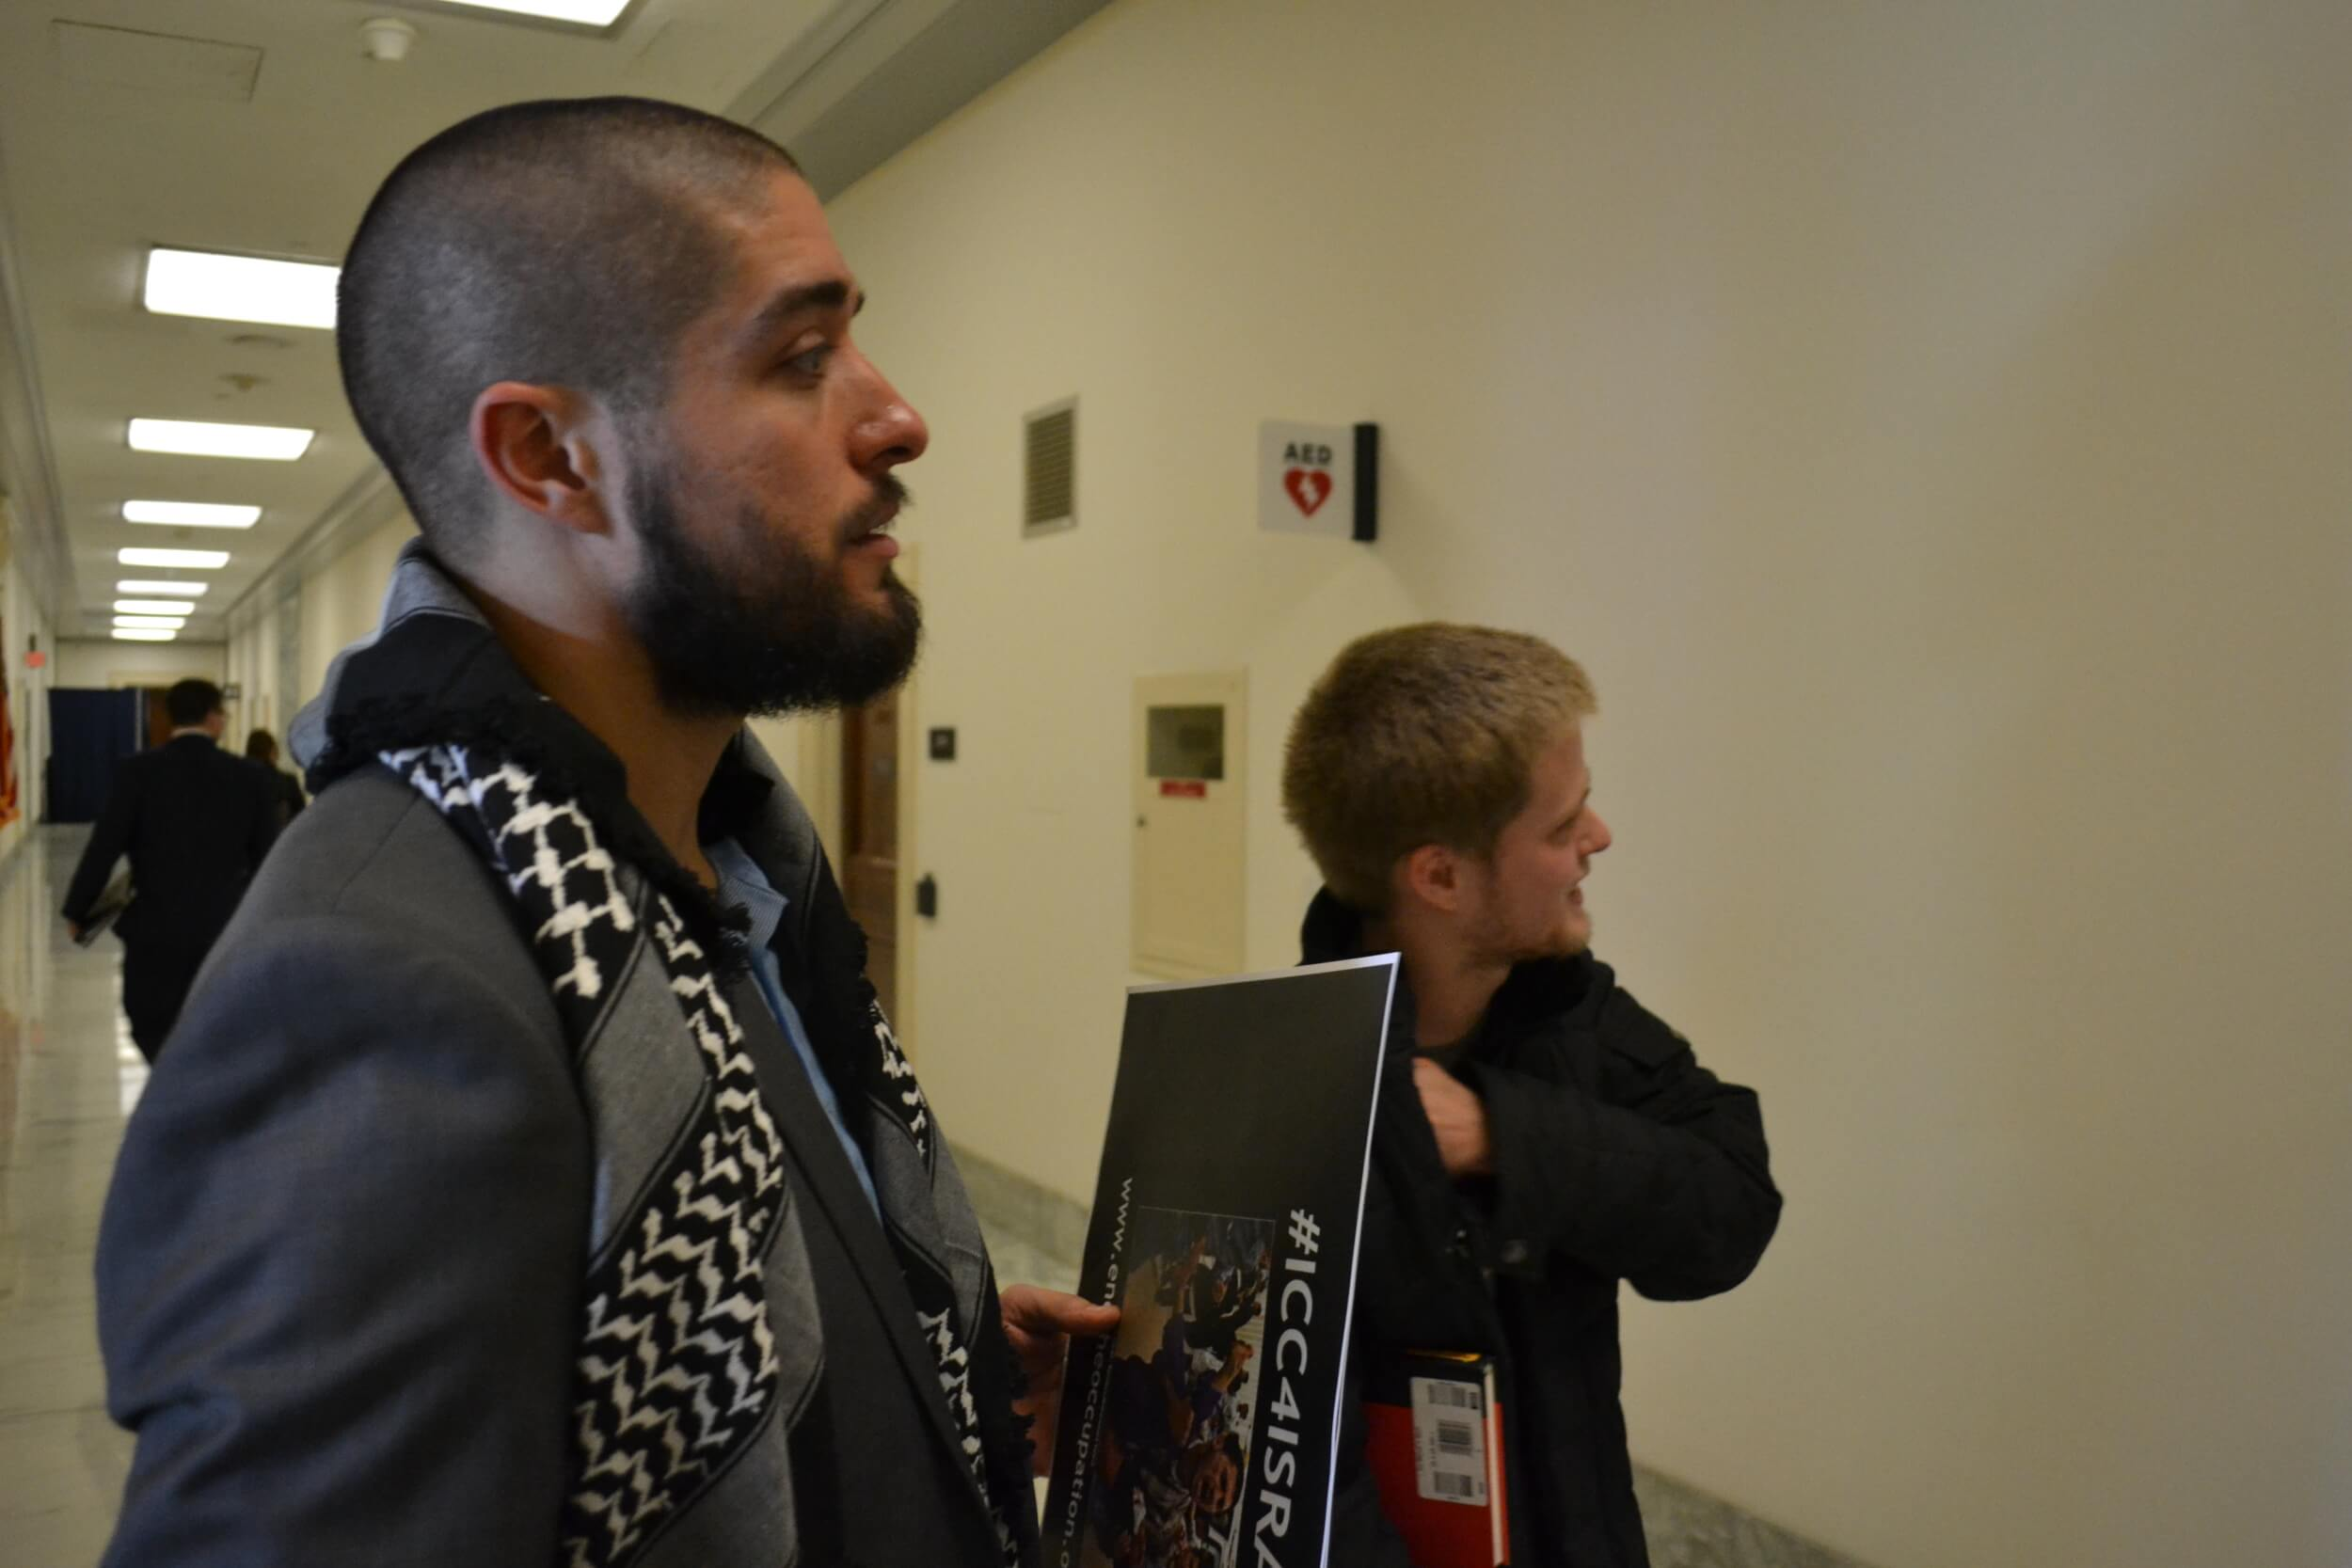 In the hallway outside of the Rayburn hearing room, the man with the kuffiyeh who was promptly asked to leave by Capitol Police after the hearing adjourned. (Photo: Sam Knight)